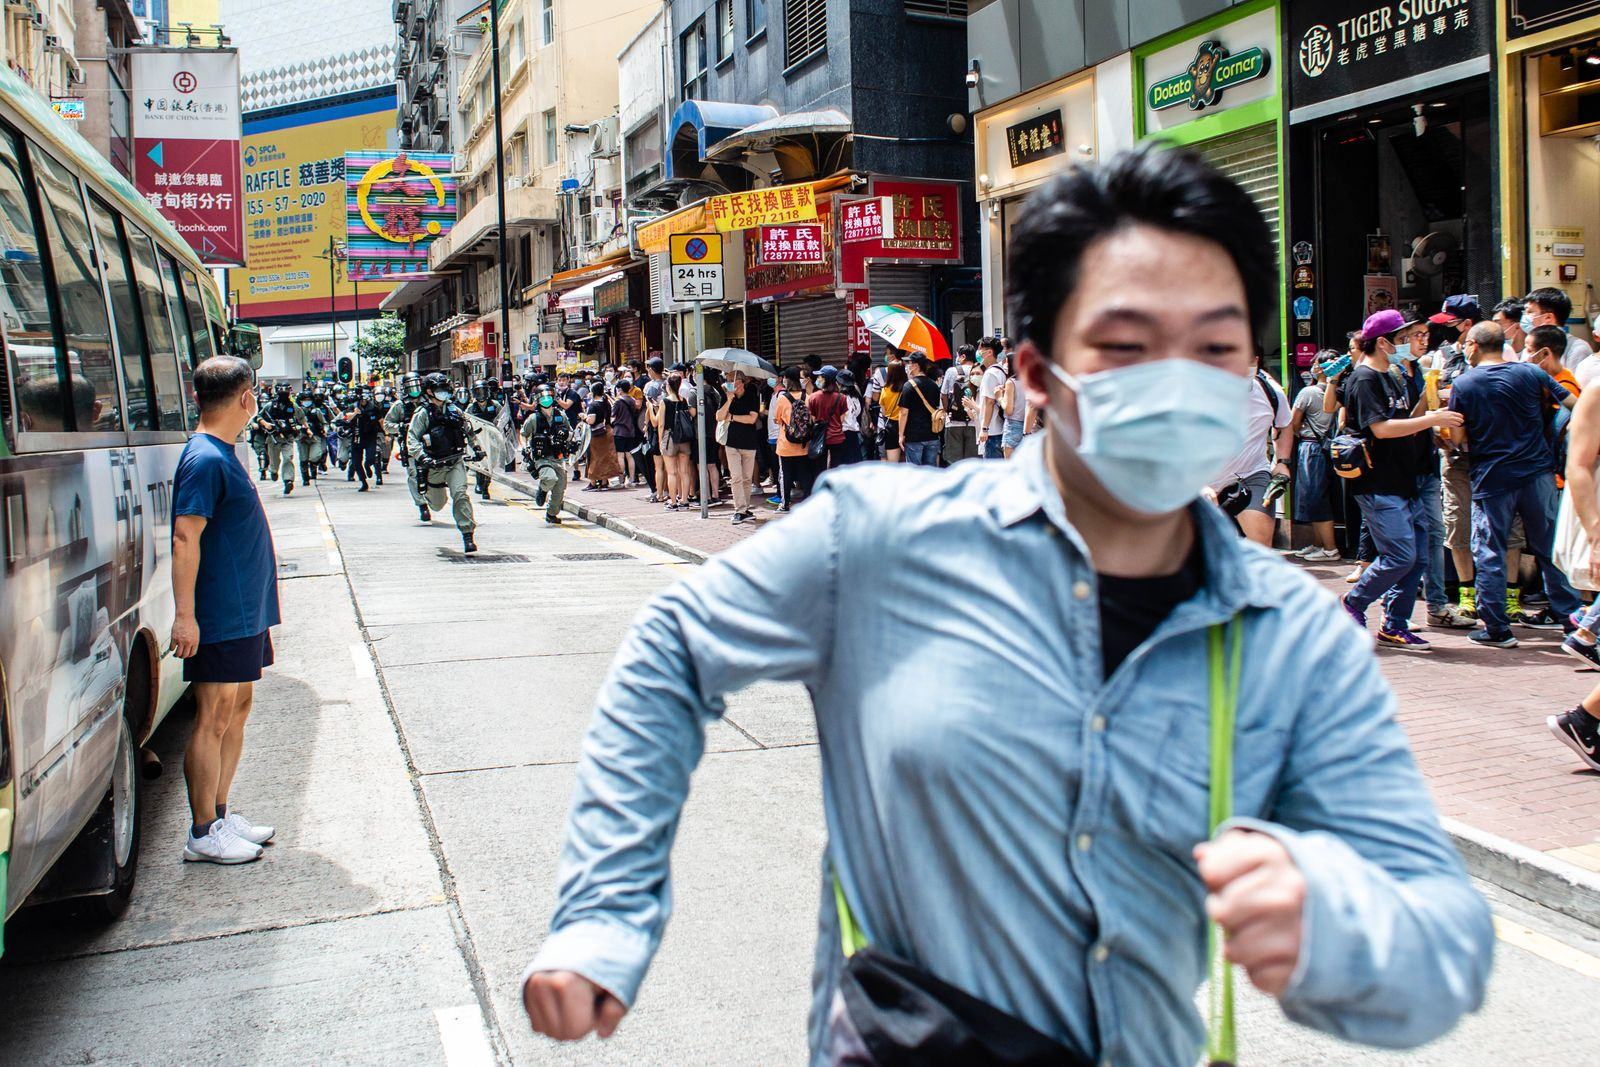 July 1, 2020, Hong Kong, China: Riot police in pursuit of protesters during the demonstration..Following the passing of